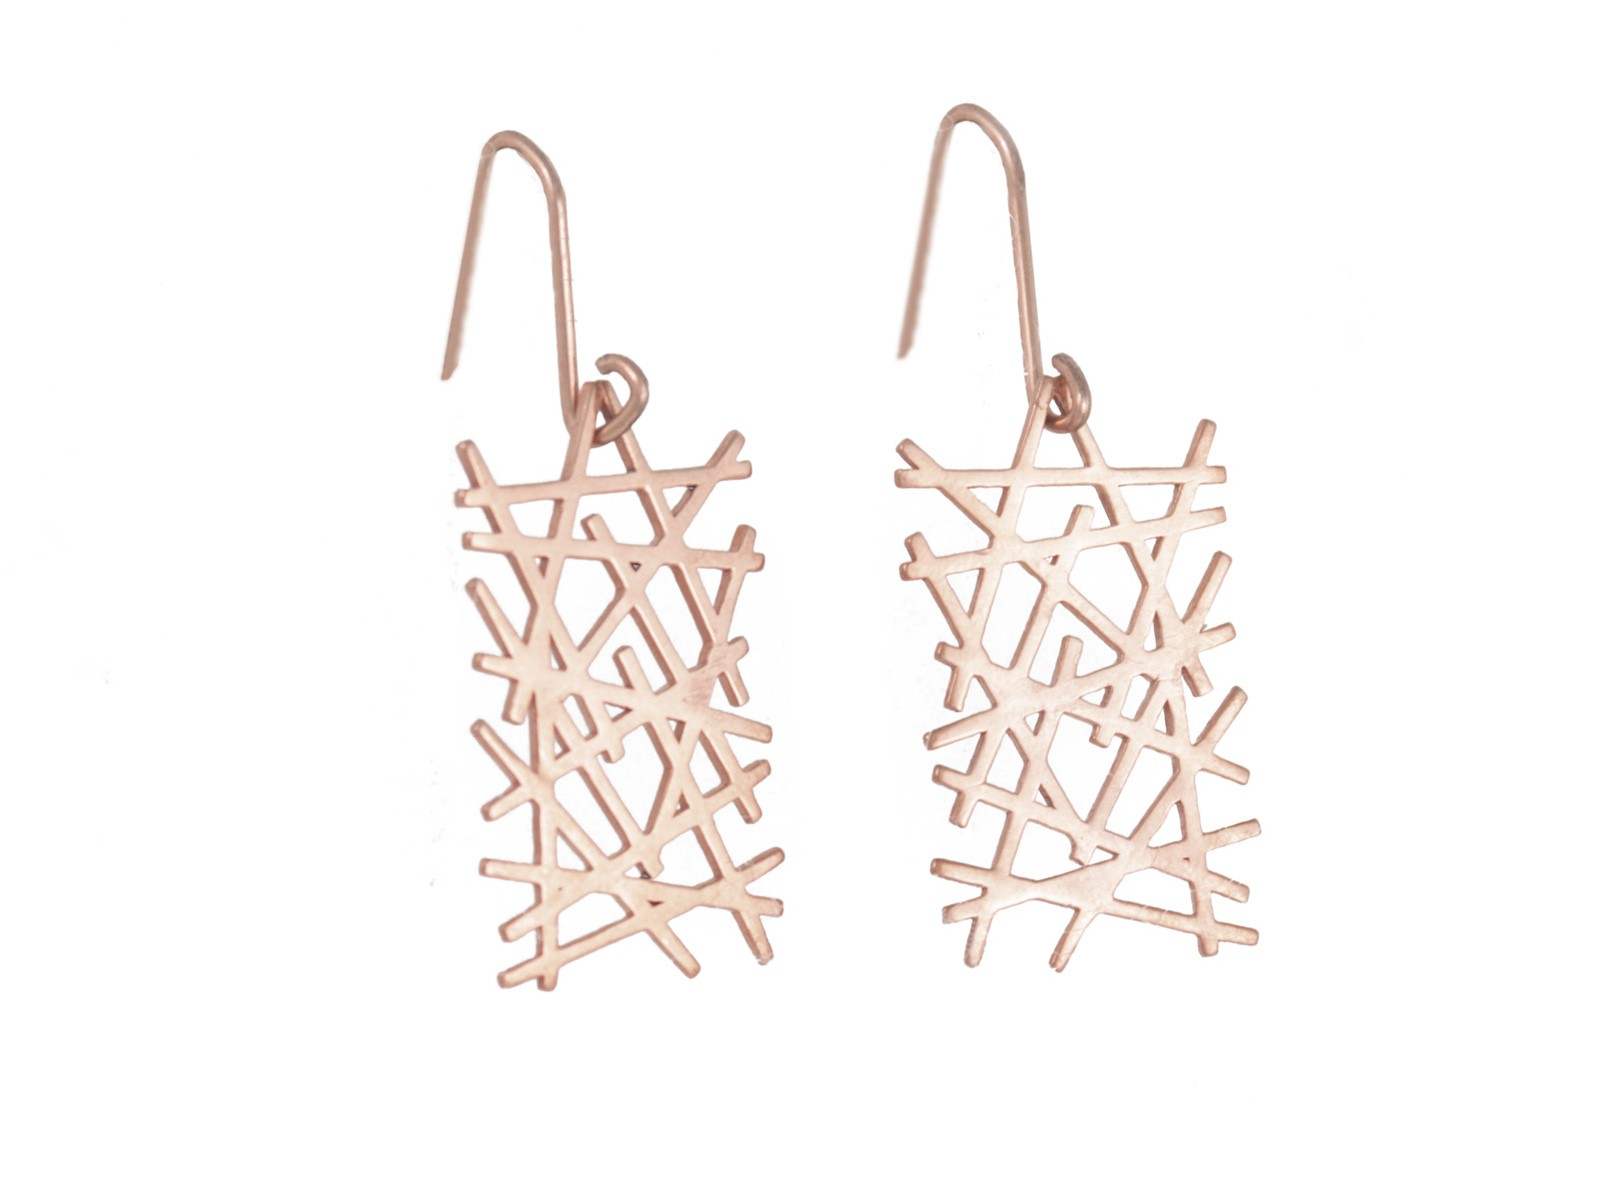 LINES LITE EARRINGS